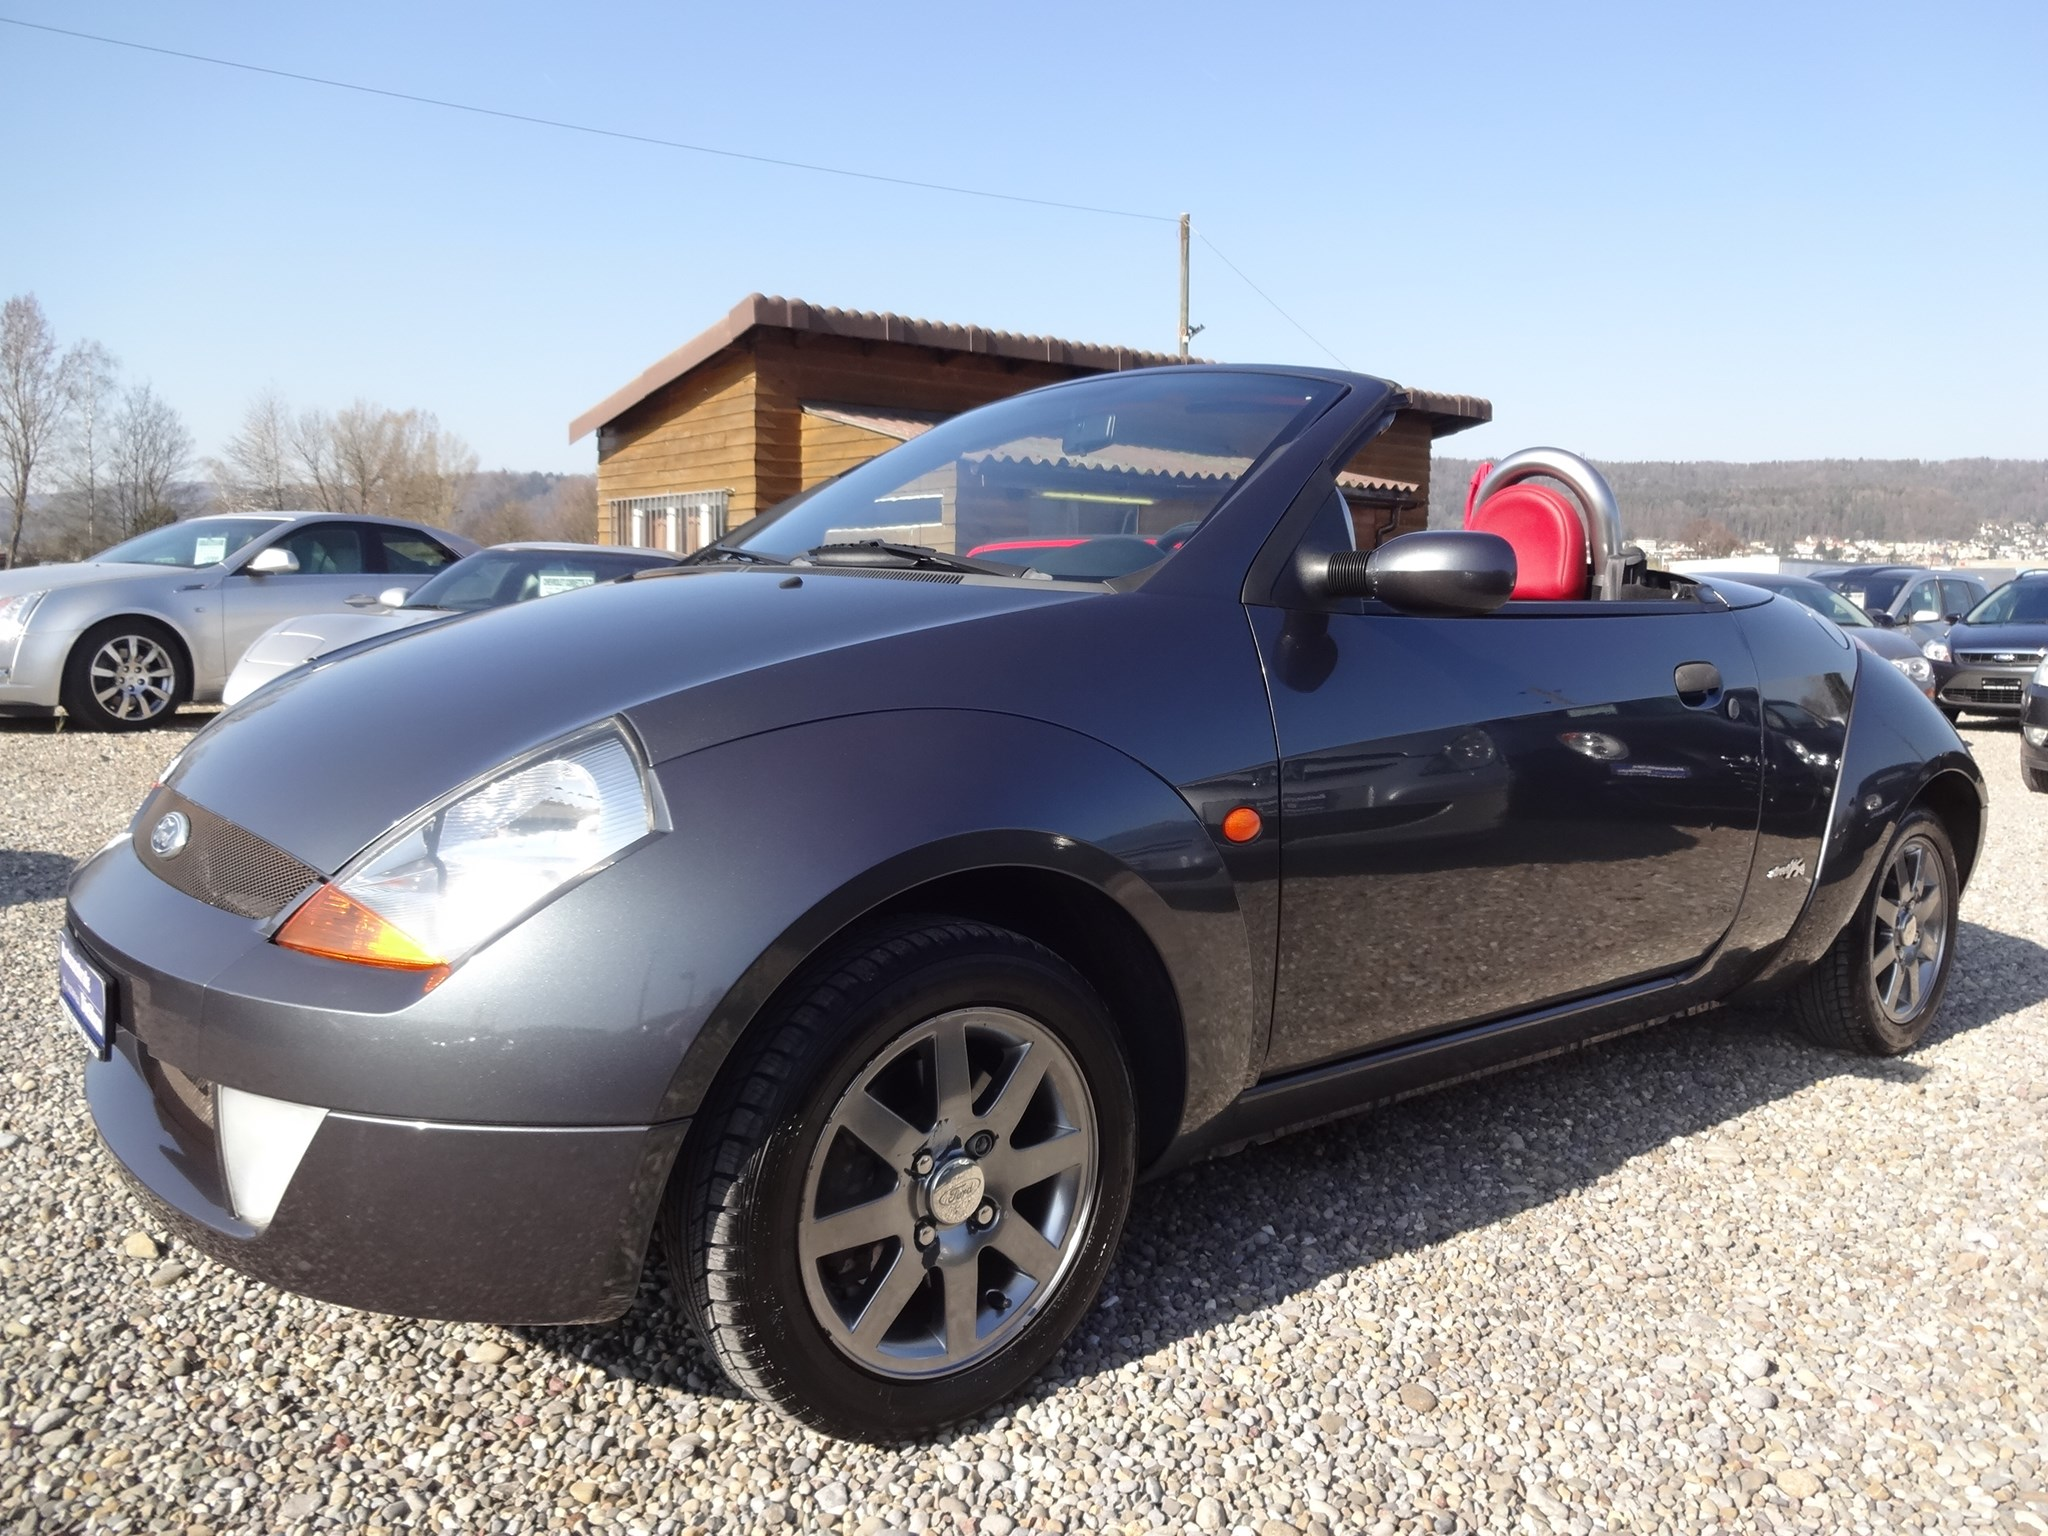 cabriolet Ford Streetka 1.6 (Luxury)